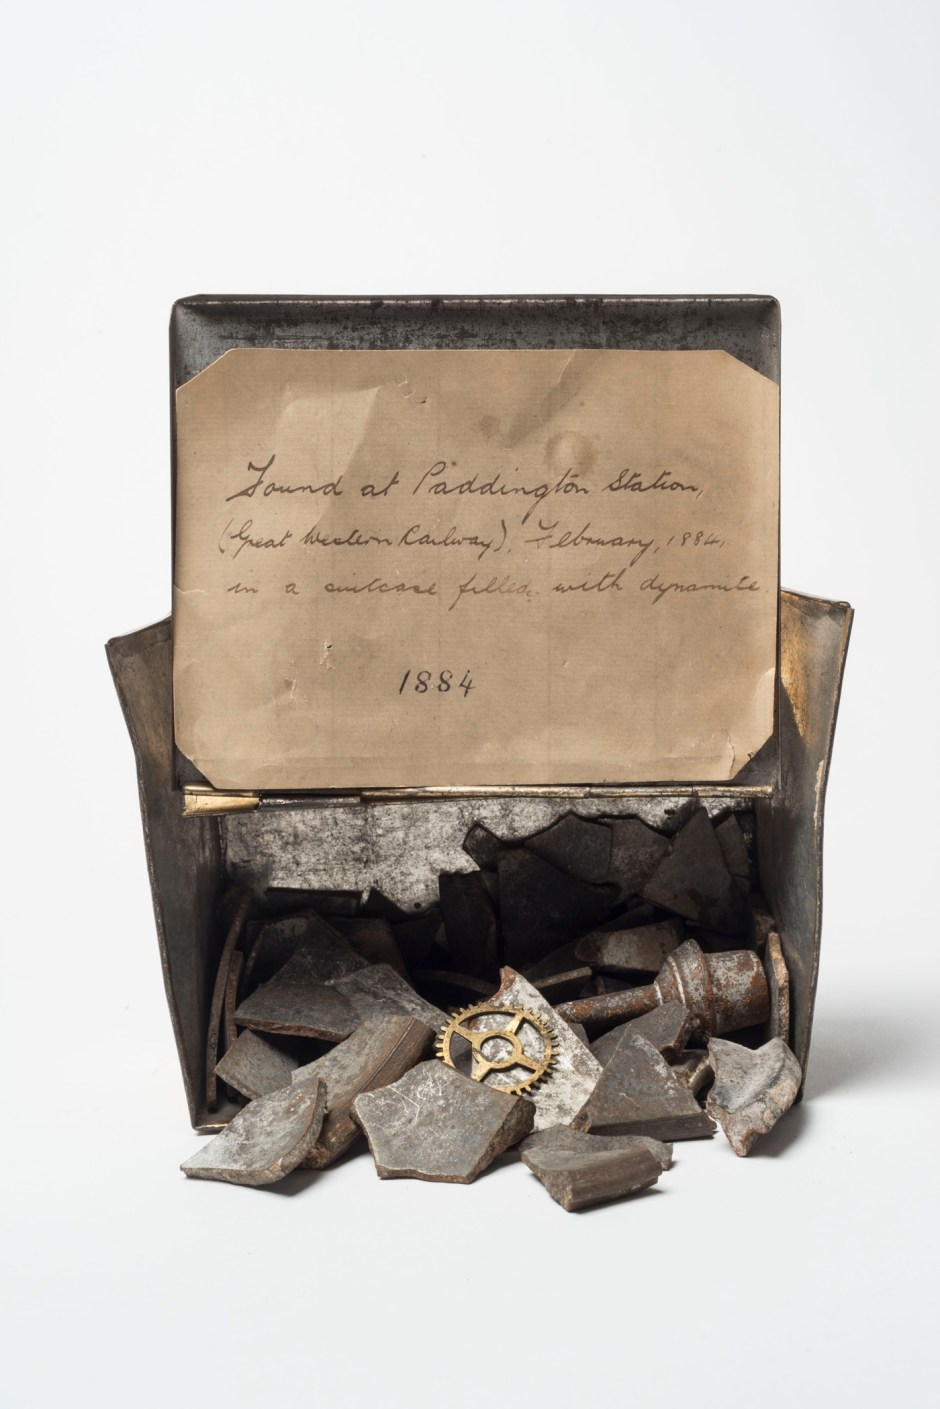 Terrorism: Shrapnel from an unexploded Fenian bomb found at Paddington Station 1884 © Museum of London